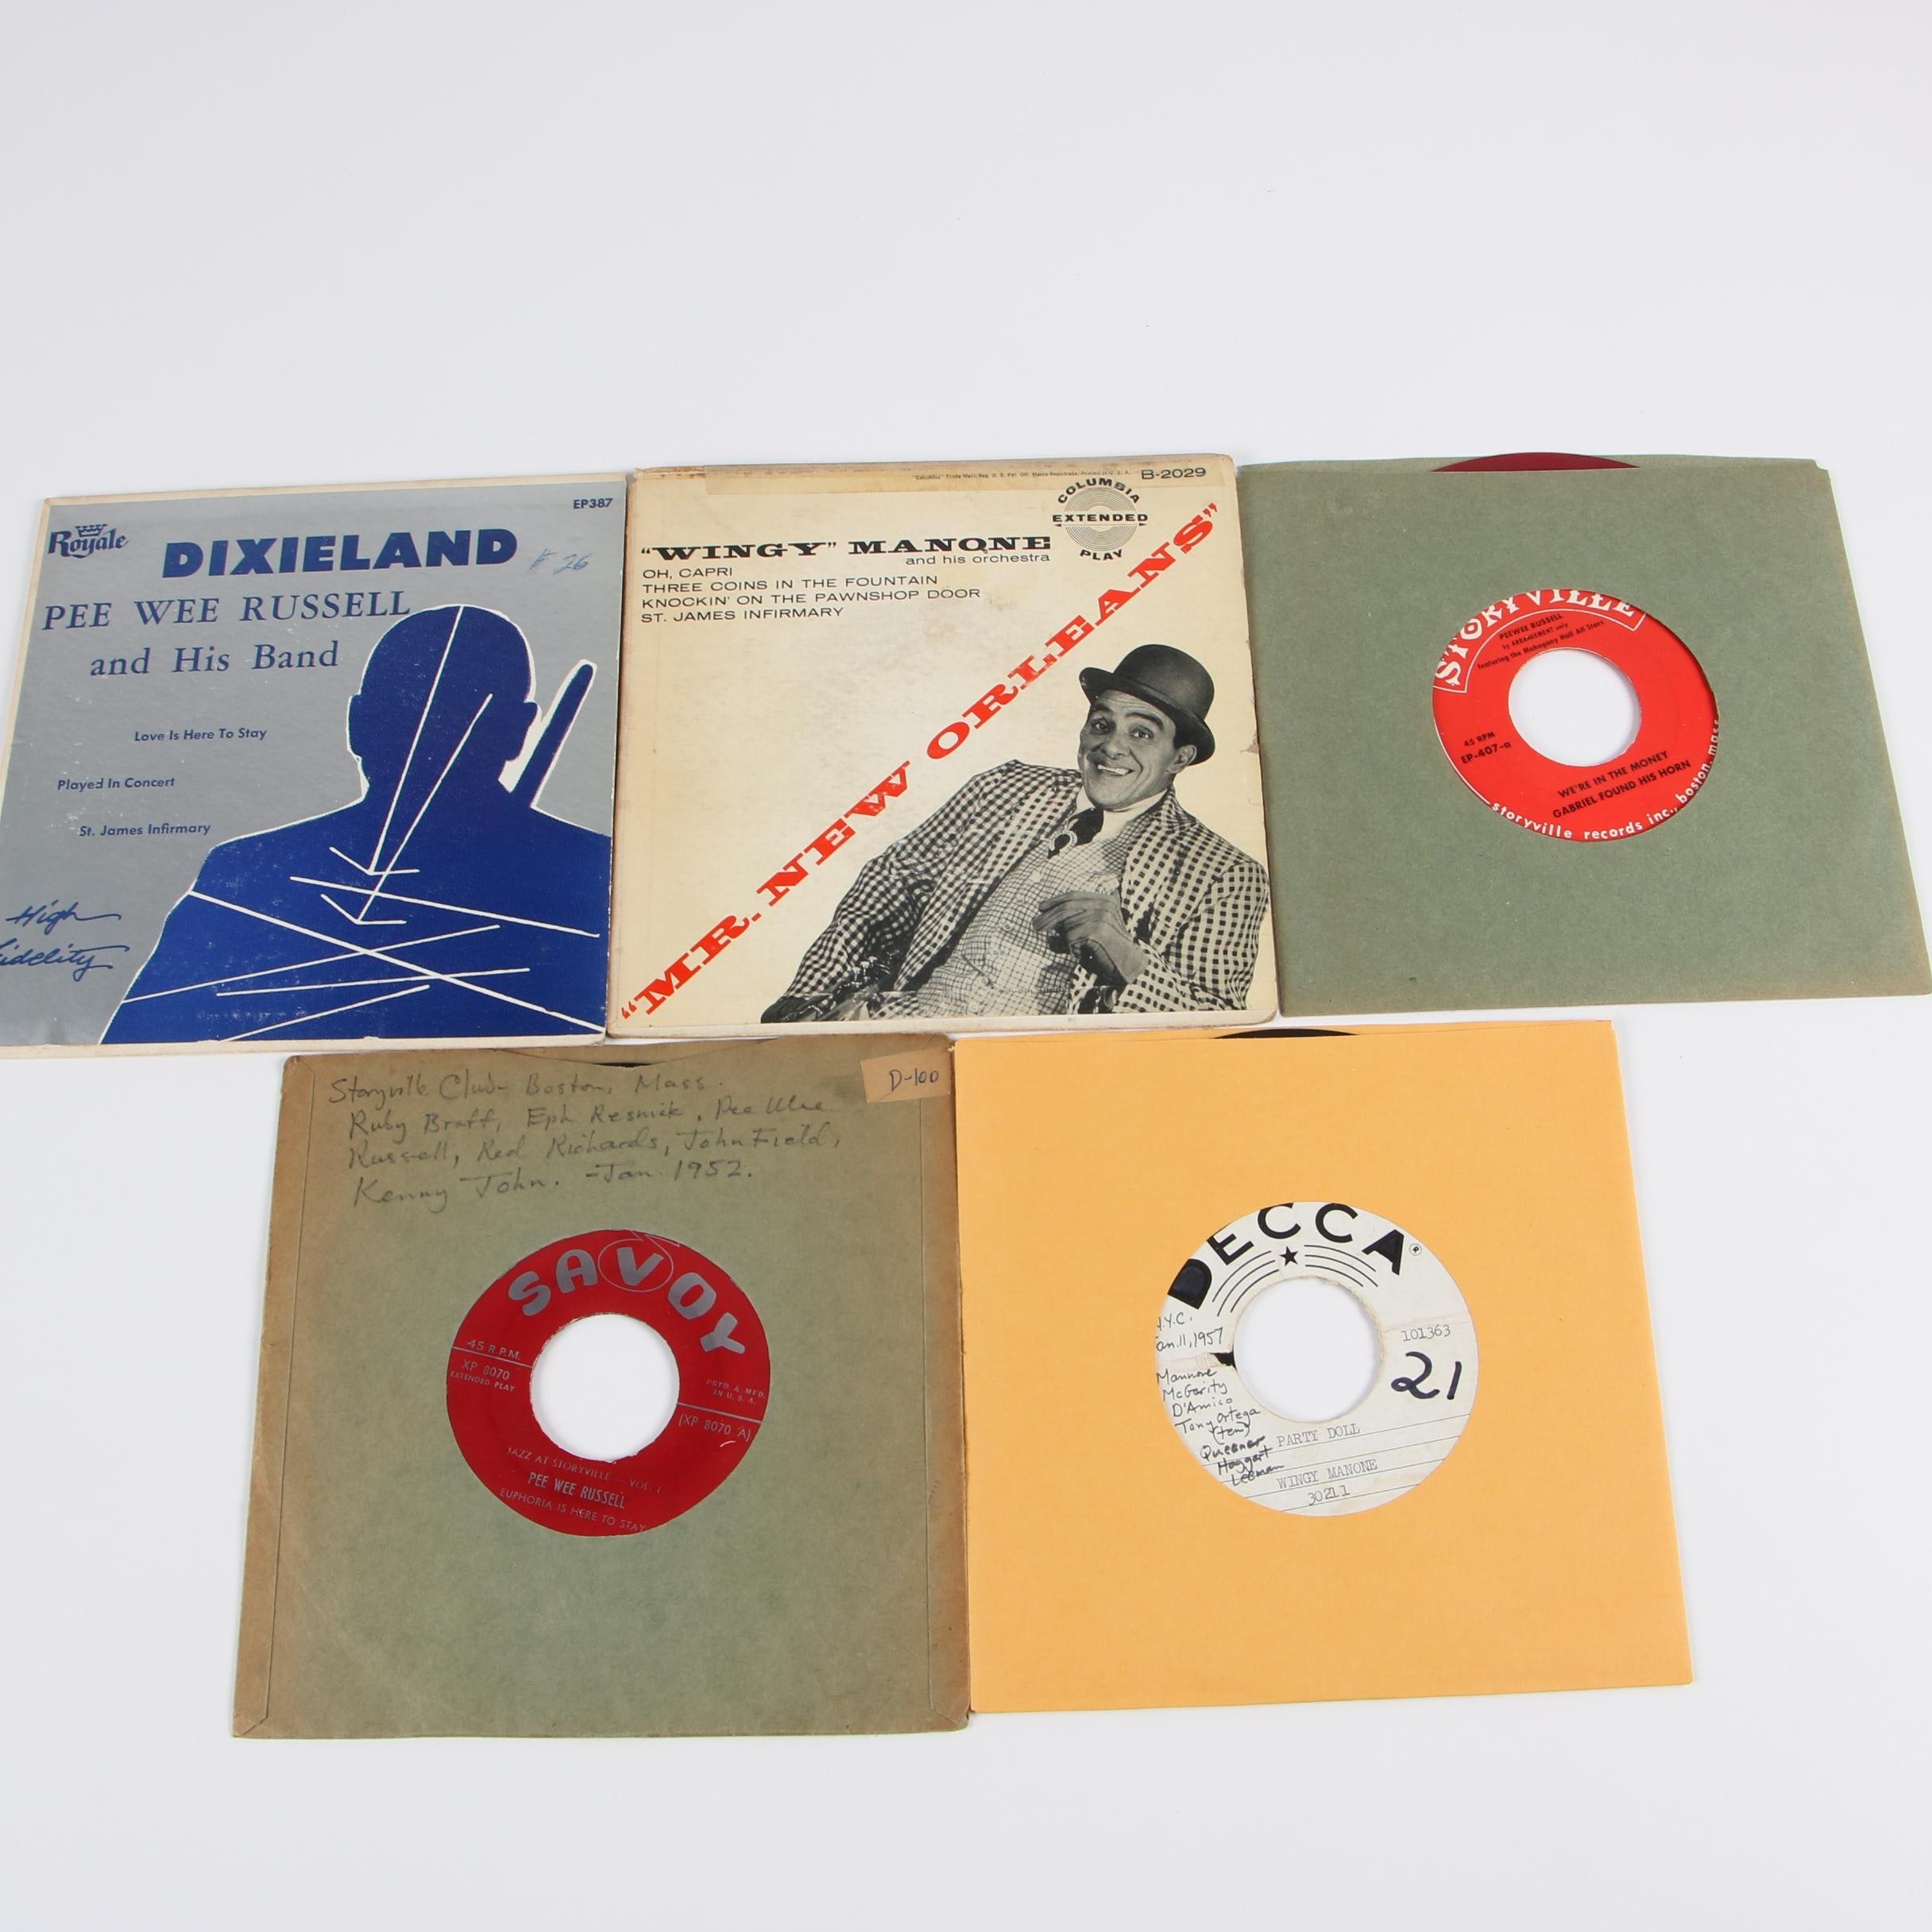 Jazz and Dixieland 45 RPM Vinyl Records including Pee Wee Russell